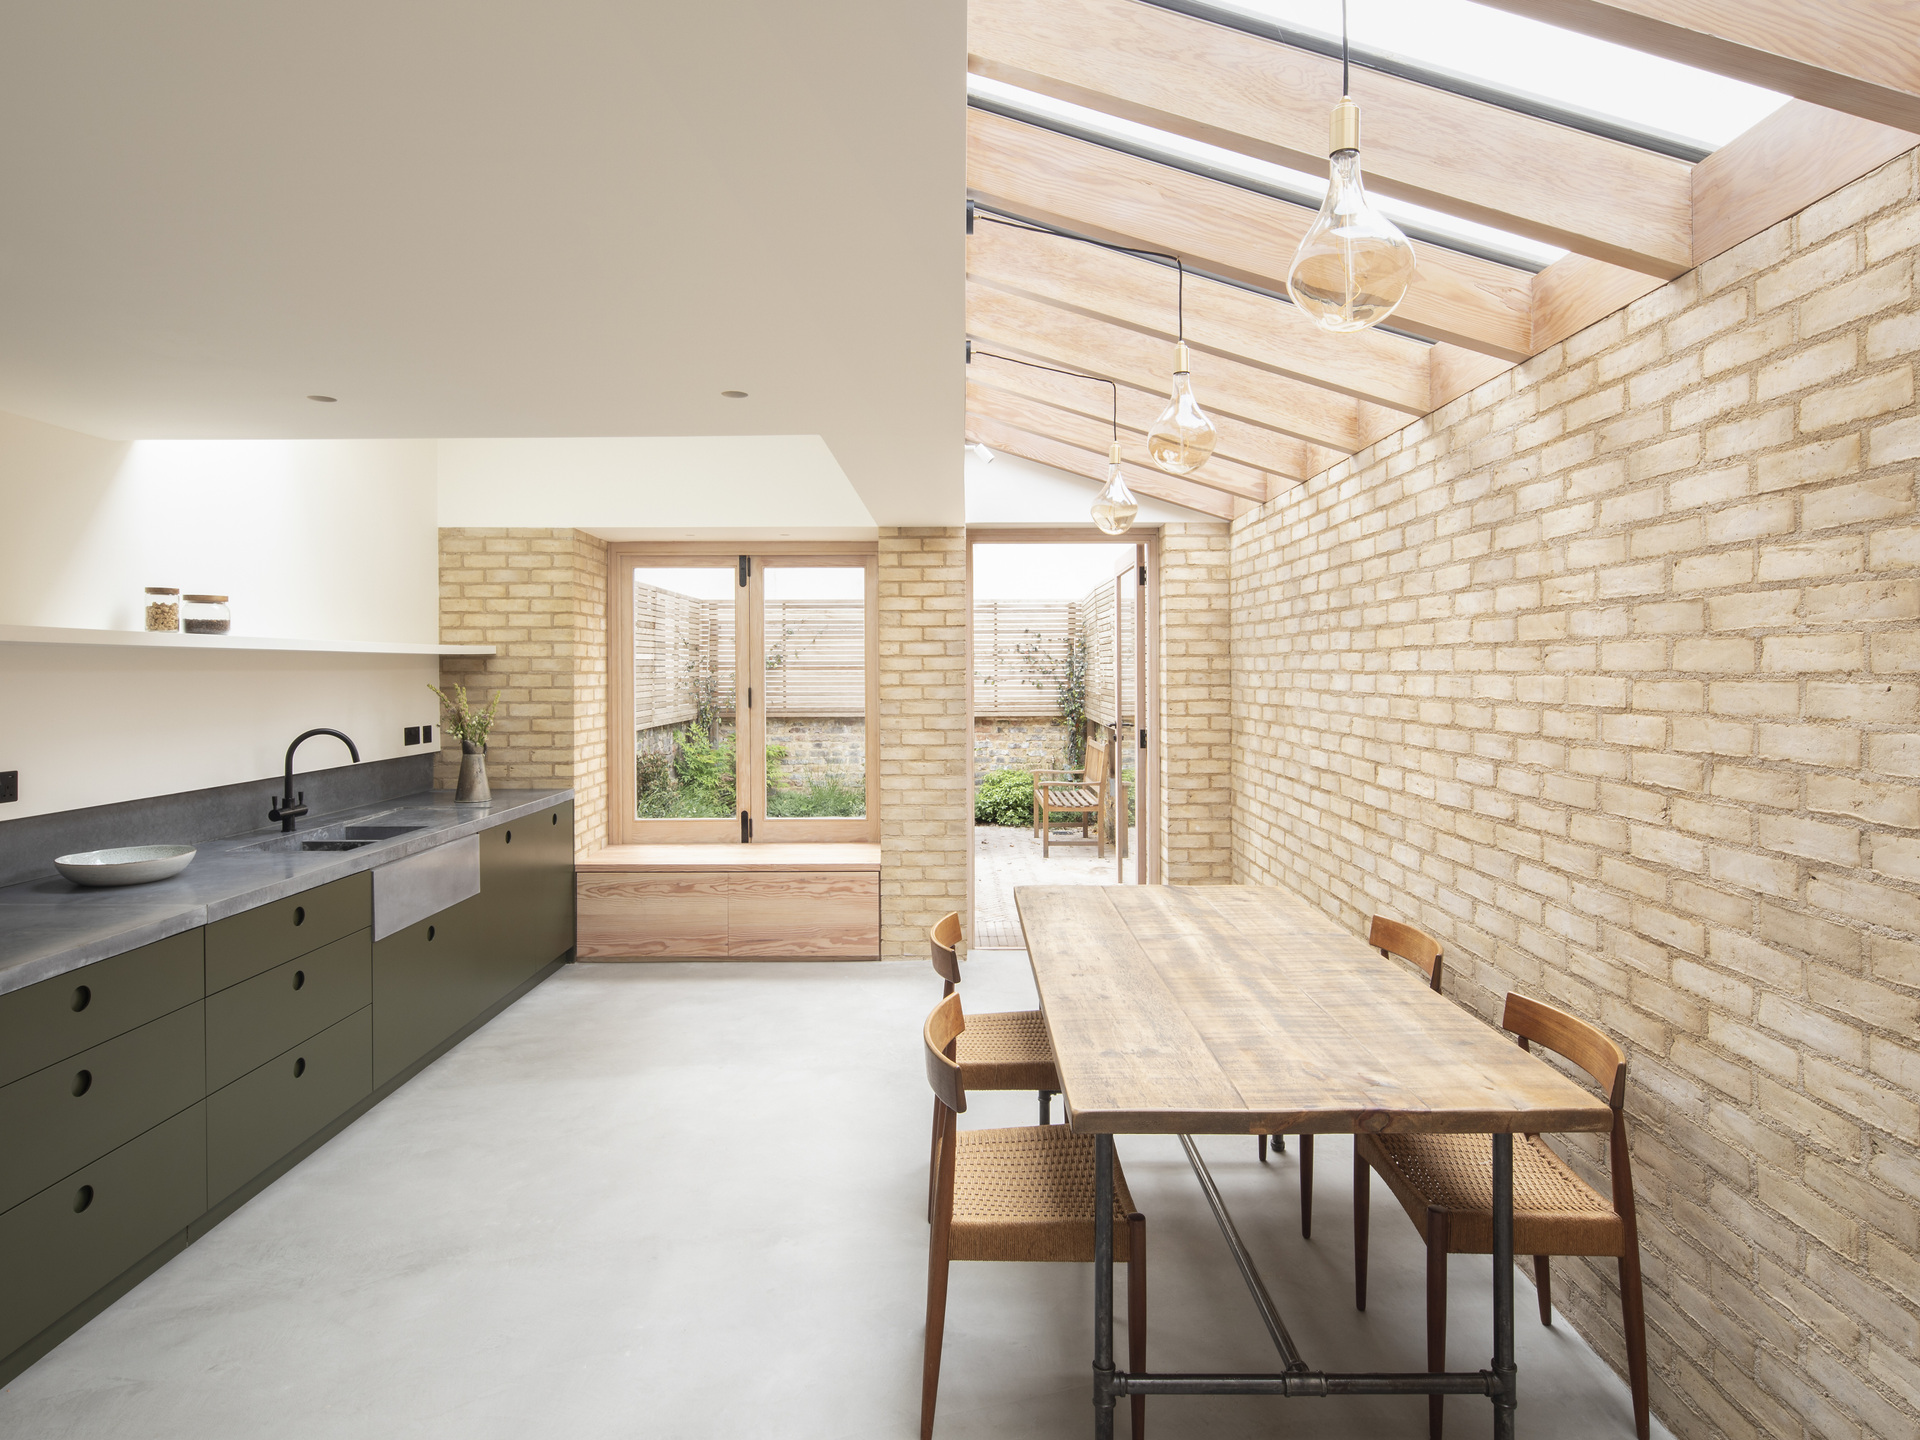 Oliver Leech Architects